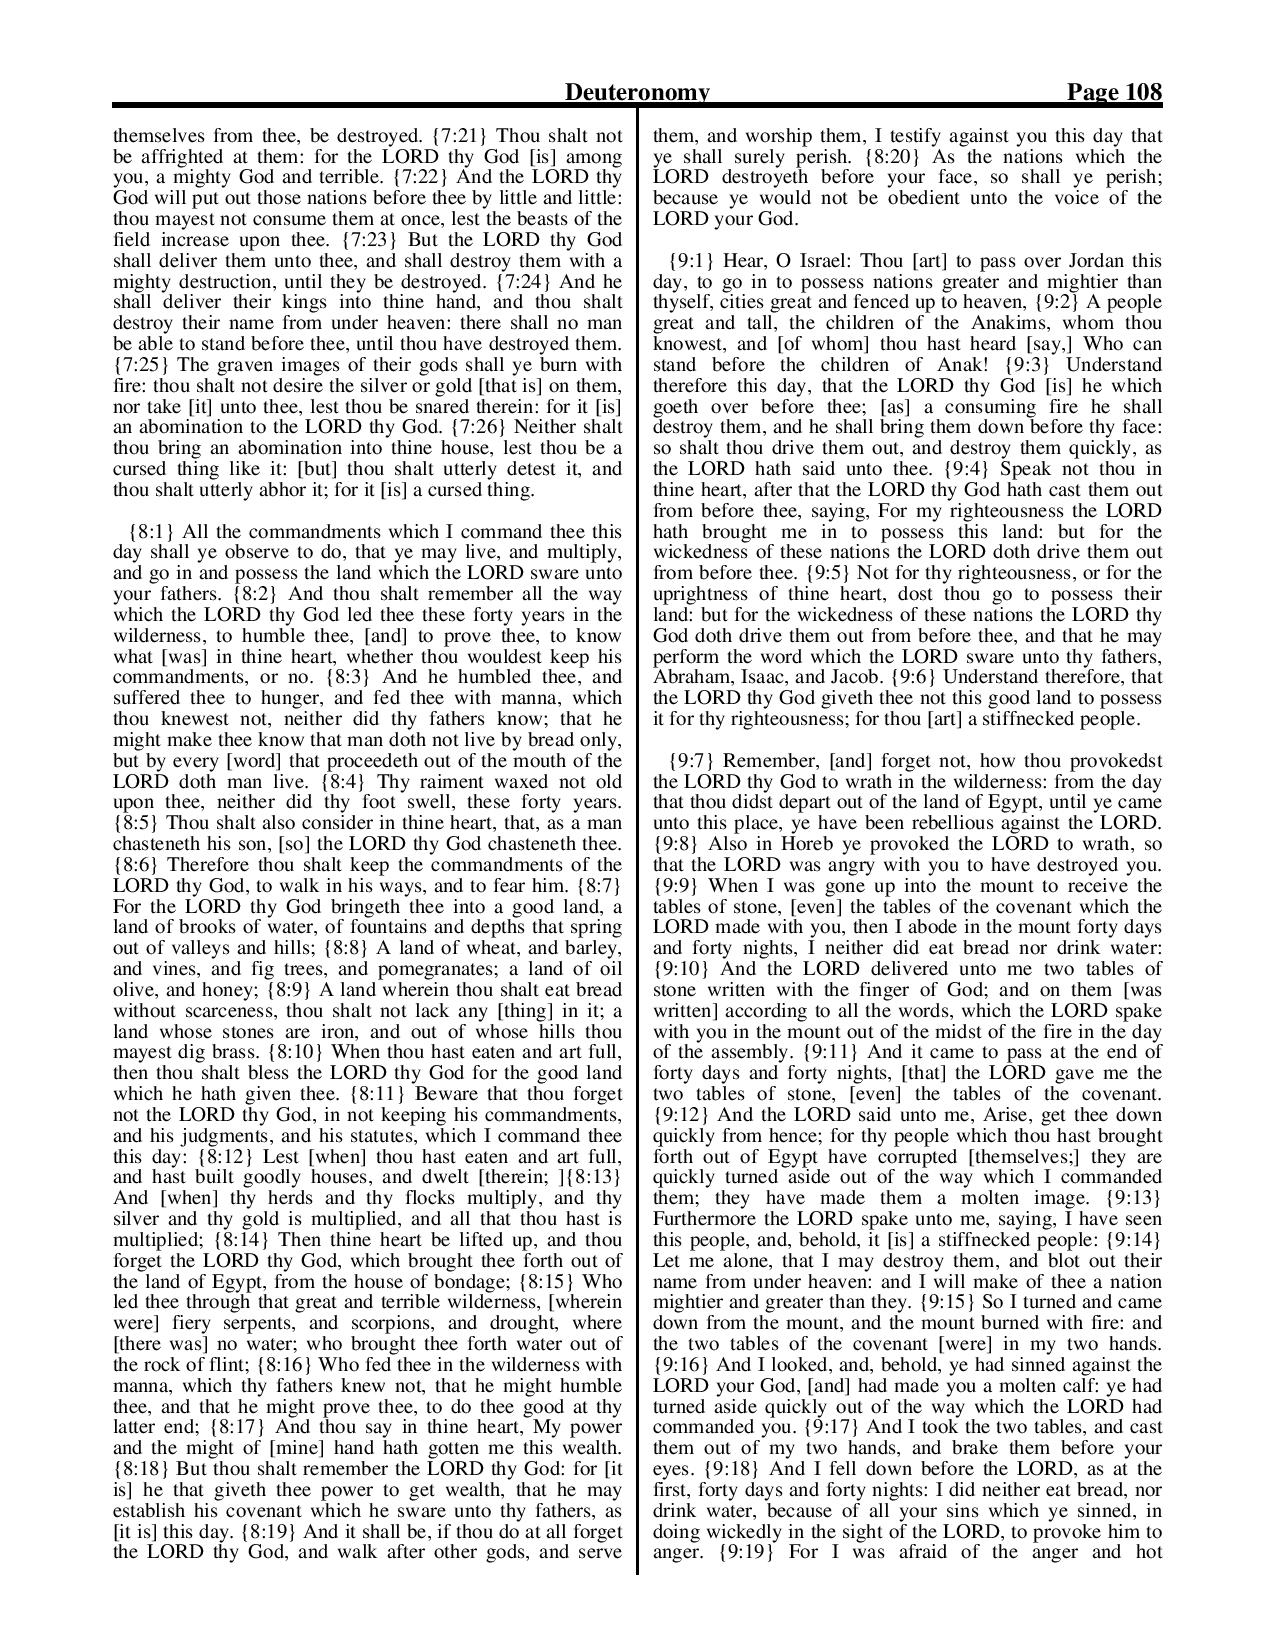 King-James-Bible-KJV-Bible-PDF-page-129